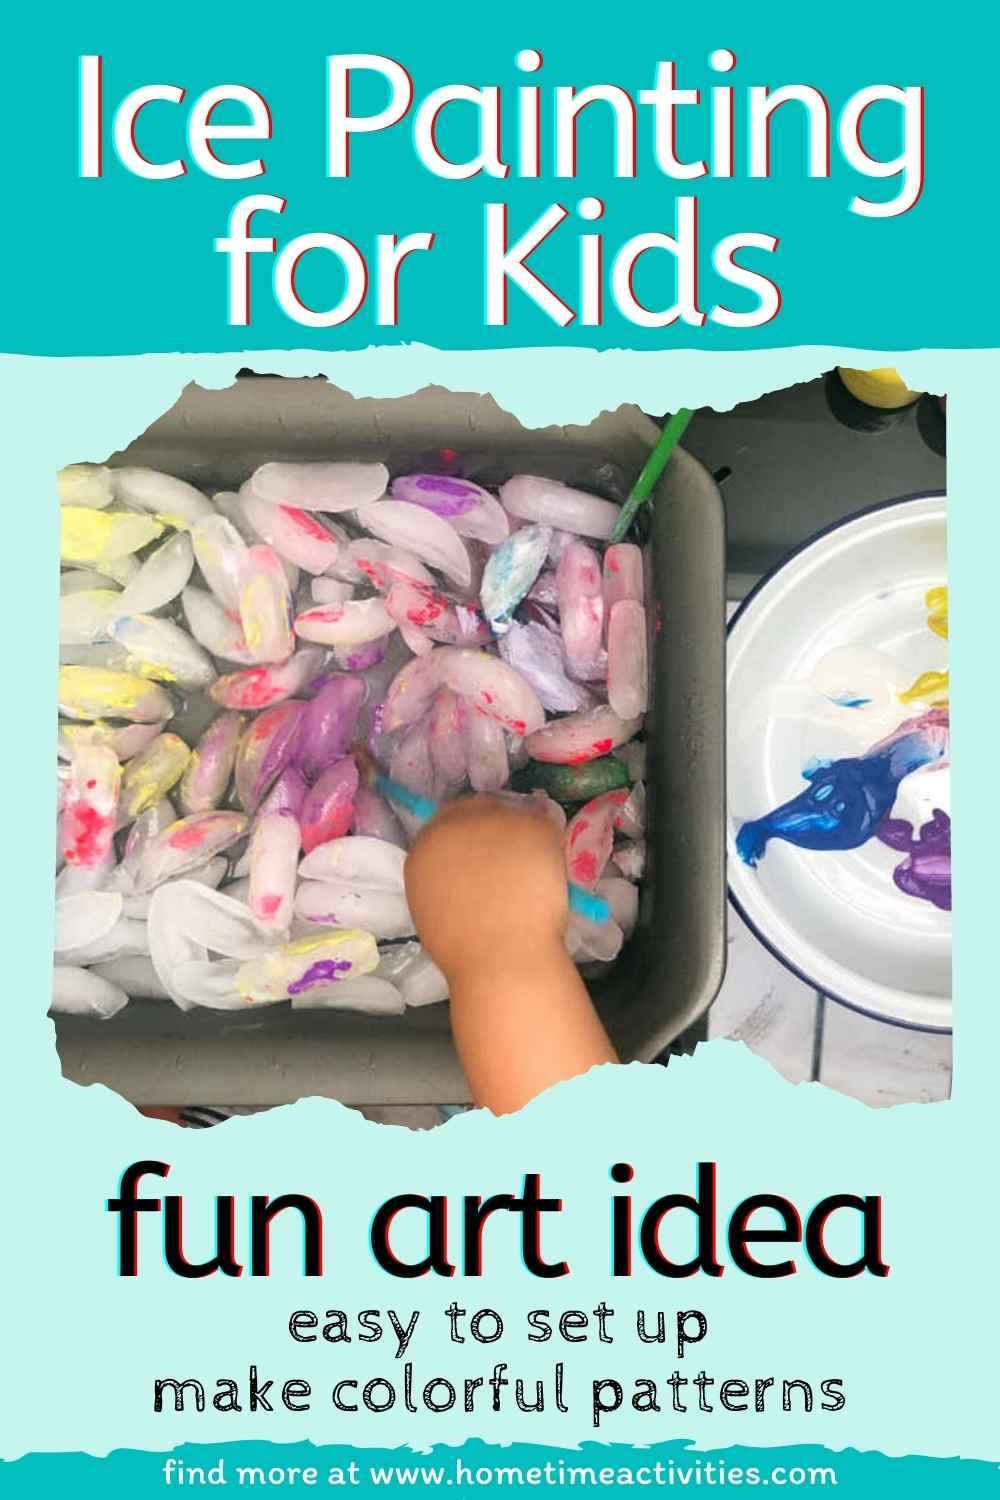 Ice Painting for Kids - washable paint and ice cubes - feature image